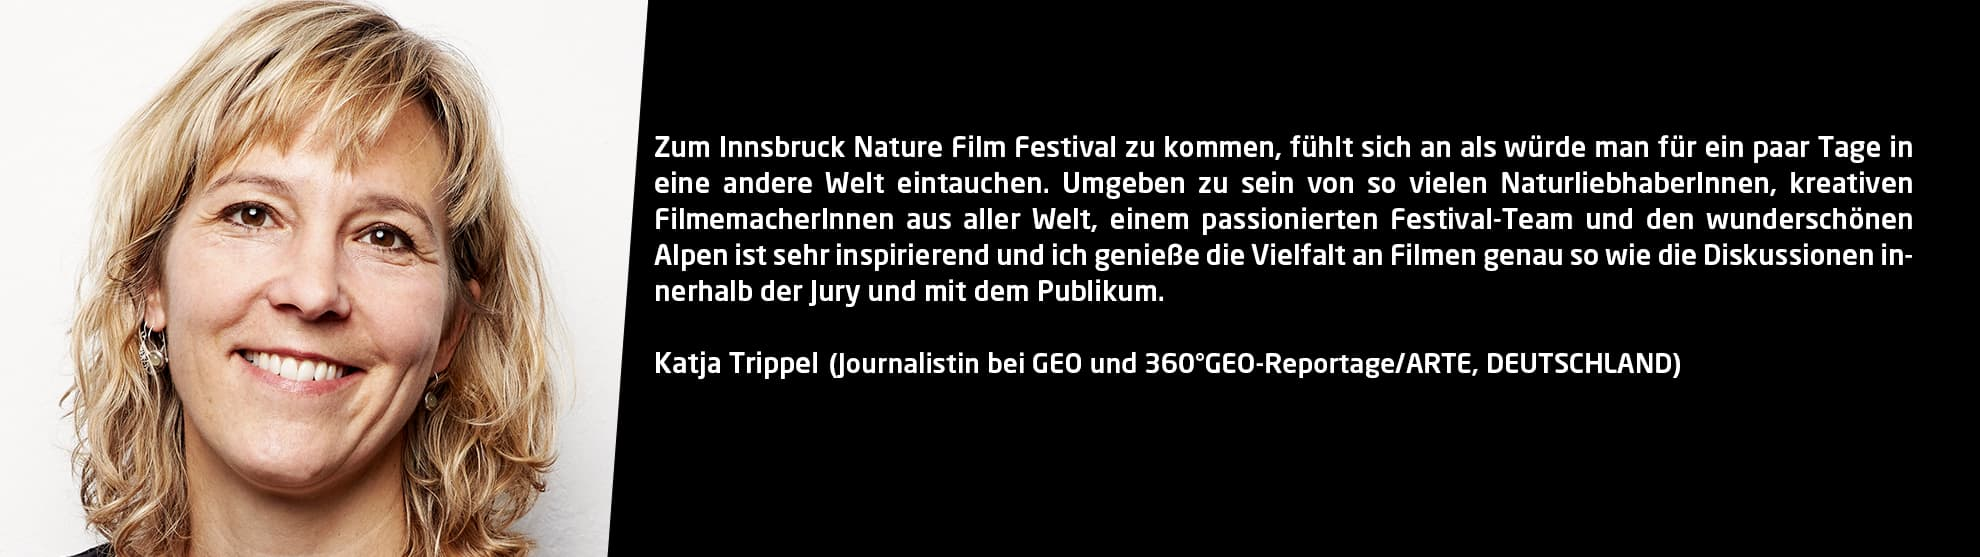 slider-katja_trippel-deutsch1